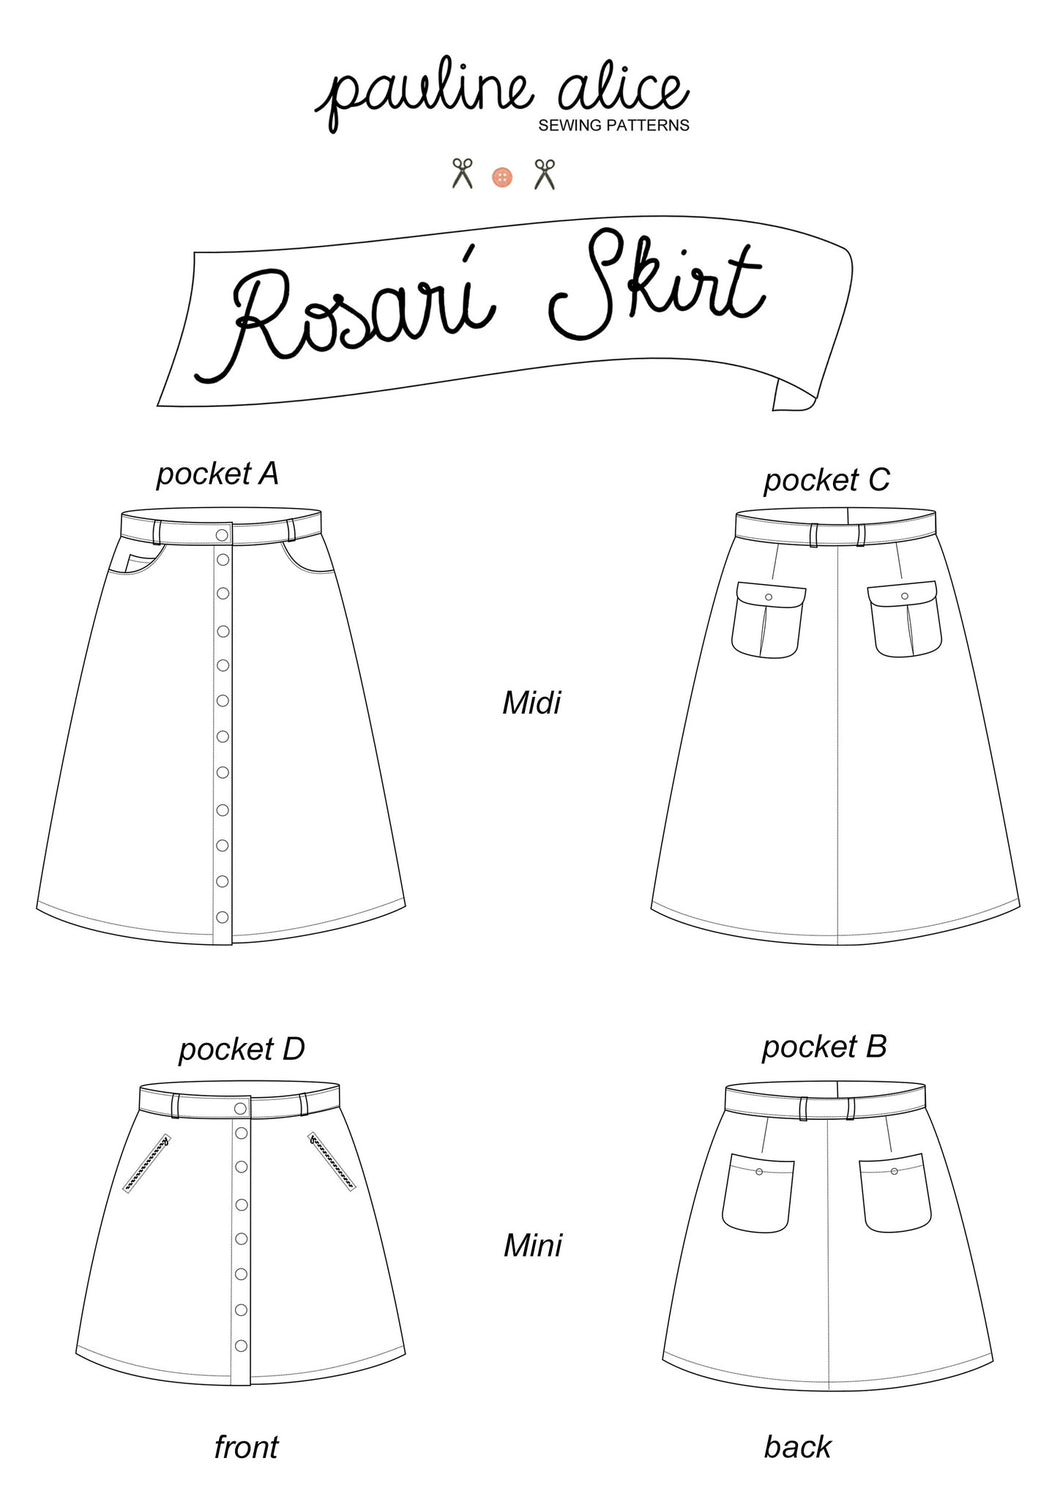 Rosarí Skirt Sewing Pattern – Indie Stitches